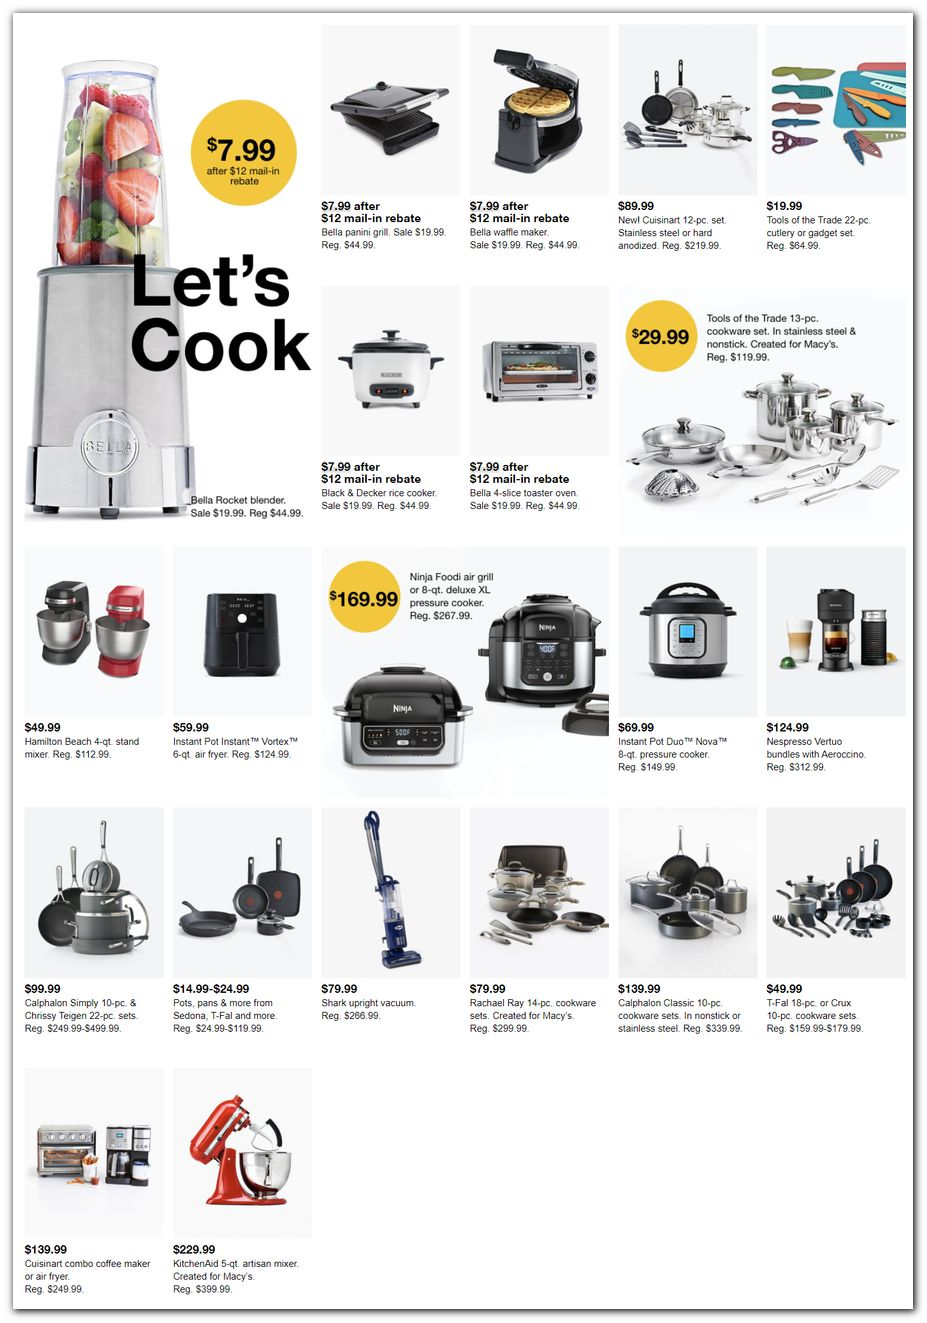 Small Appliances / Cookware Sets